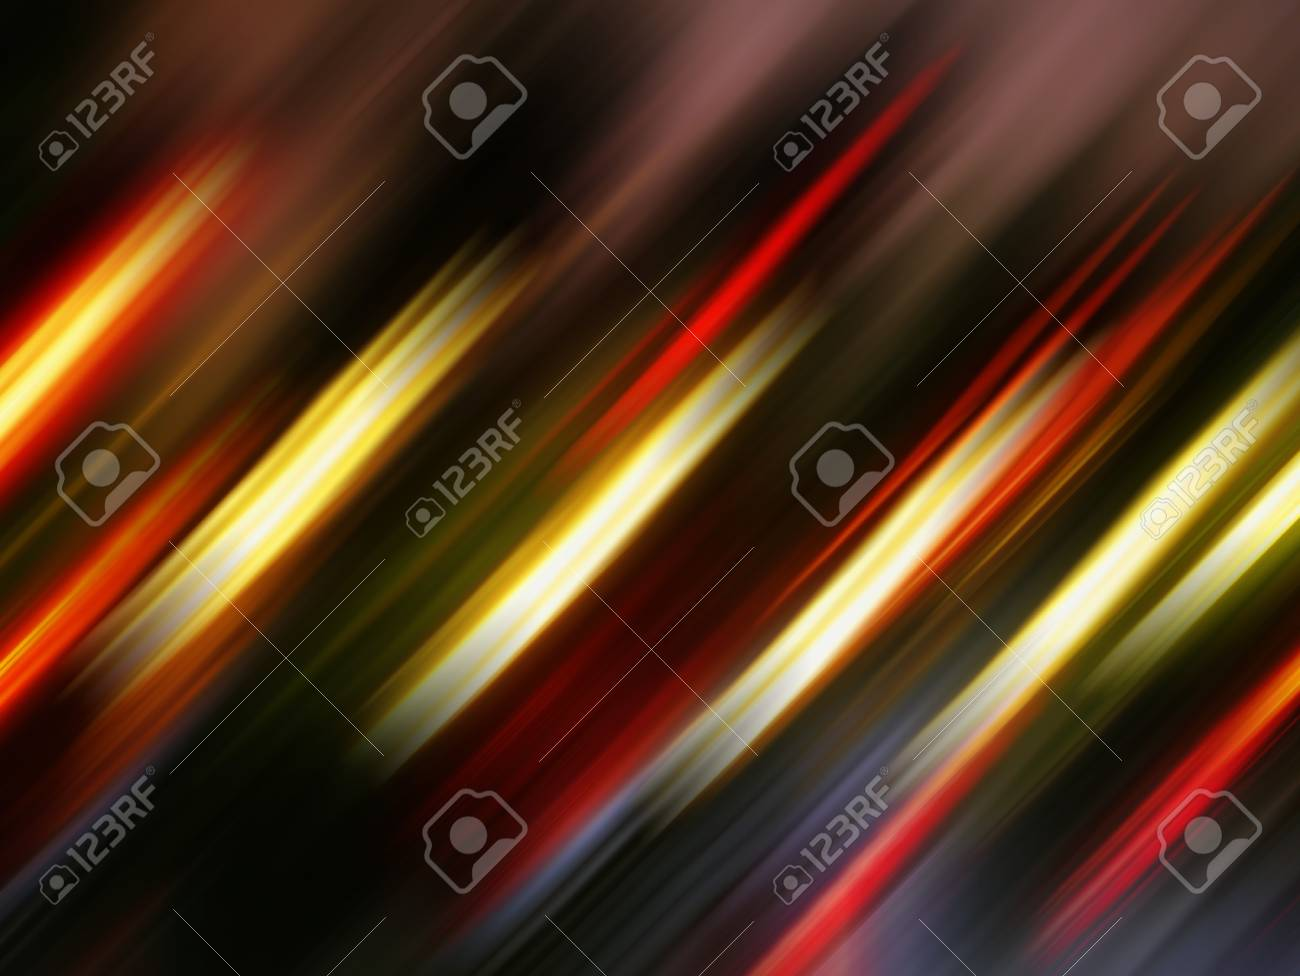 Red Yellow Glowing Diagonal Light Stripes On Black Abstract